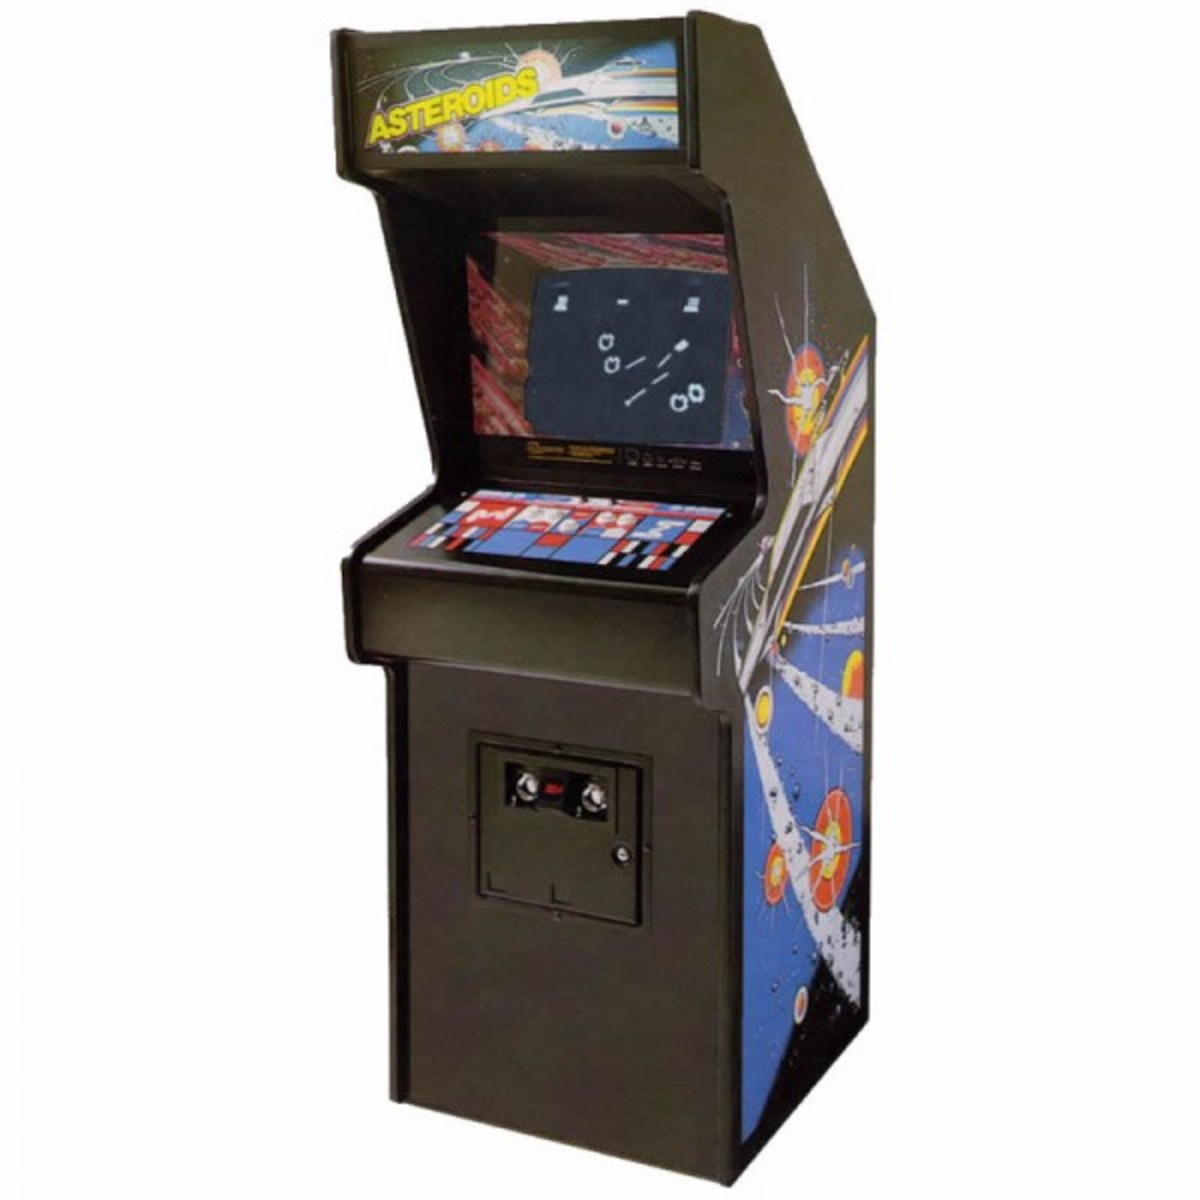 Asteroids Standard Cabinet